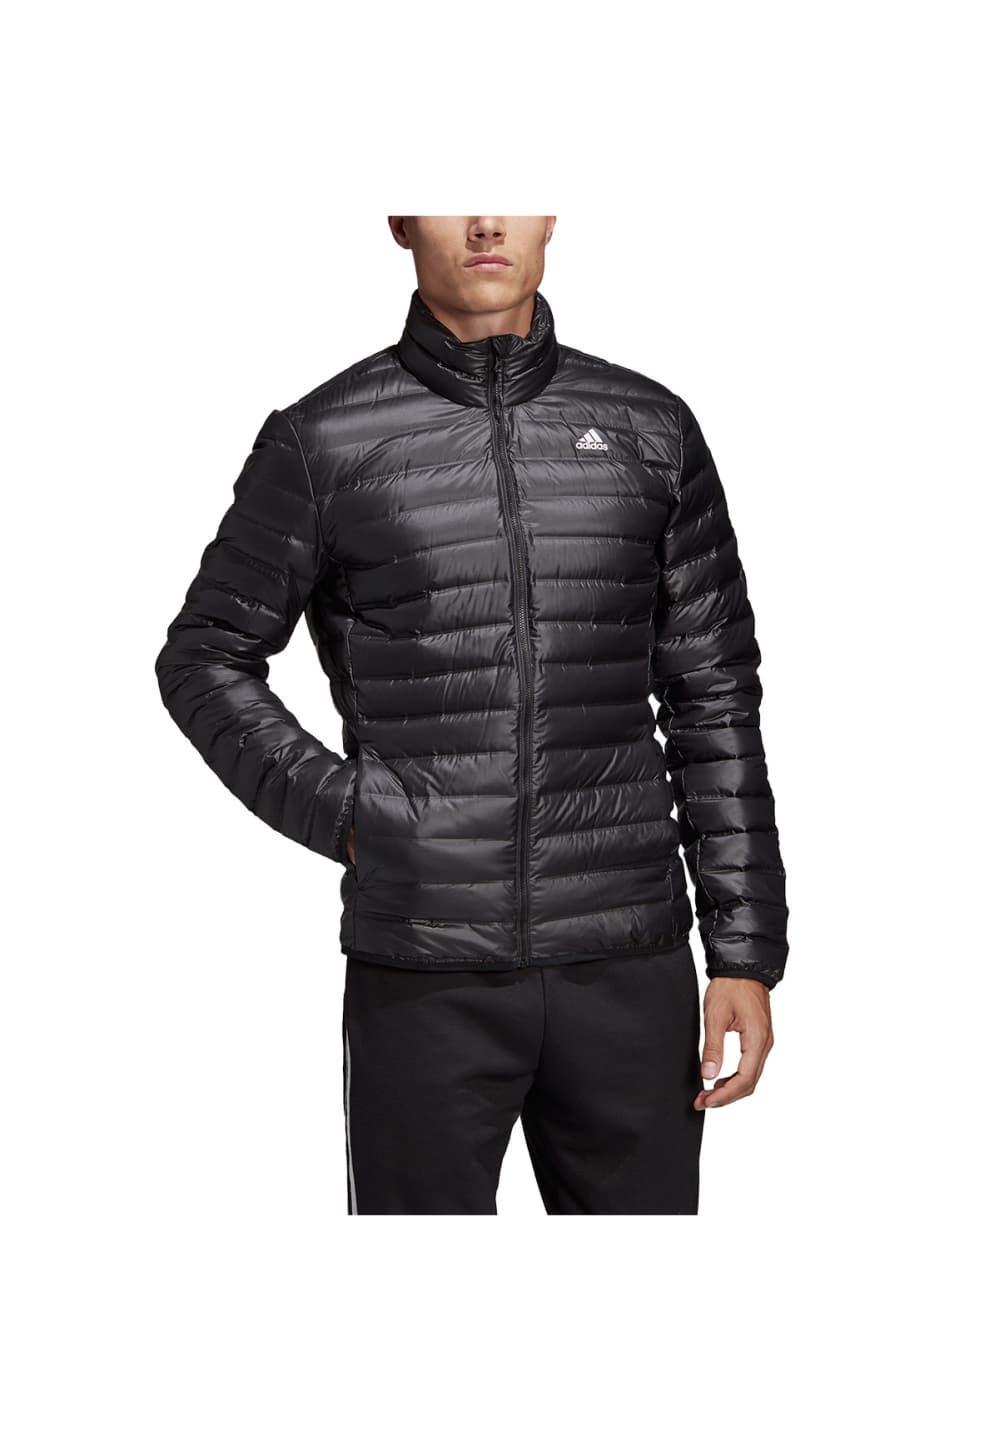 Outdoor wear Terrex jumper cold protection thermal insulation cold measures sports casual wear black navy DKQ80 for the down jacket men Adidas